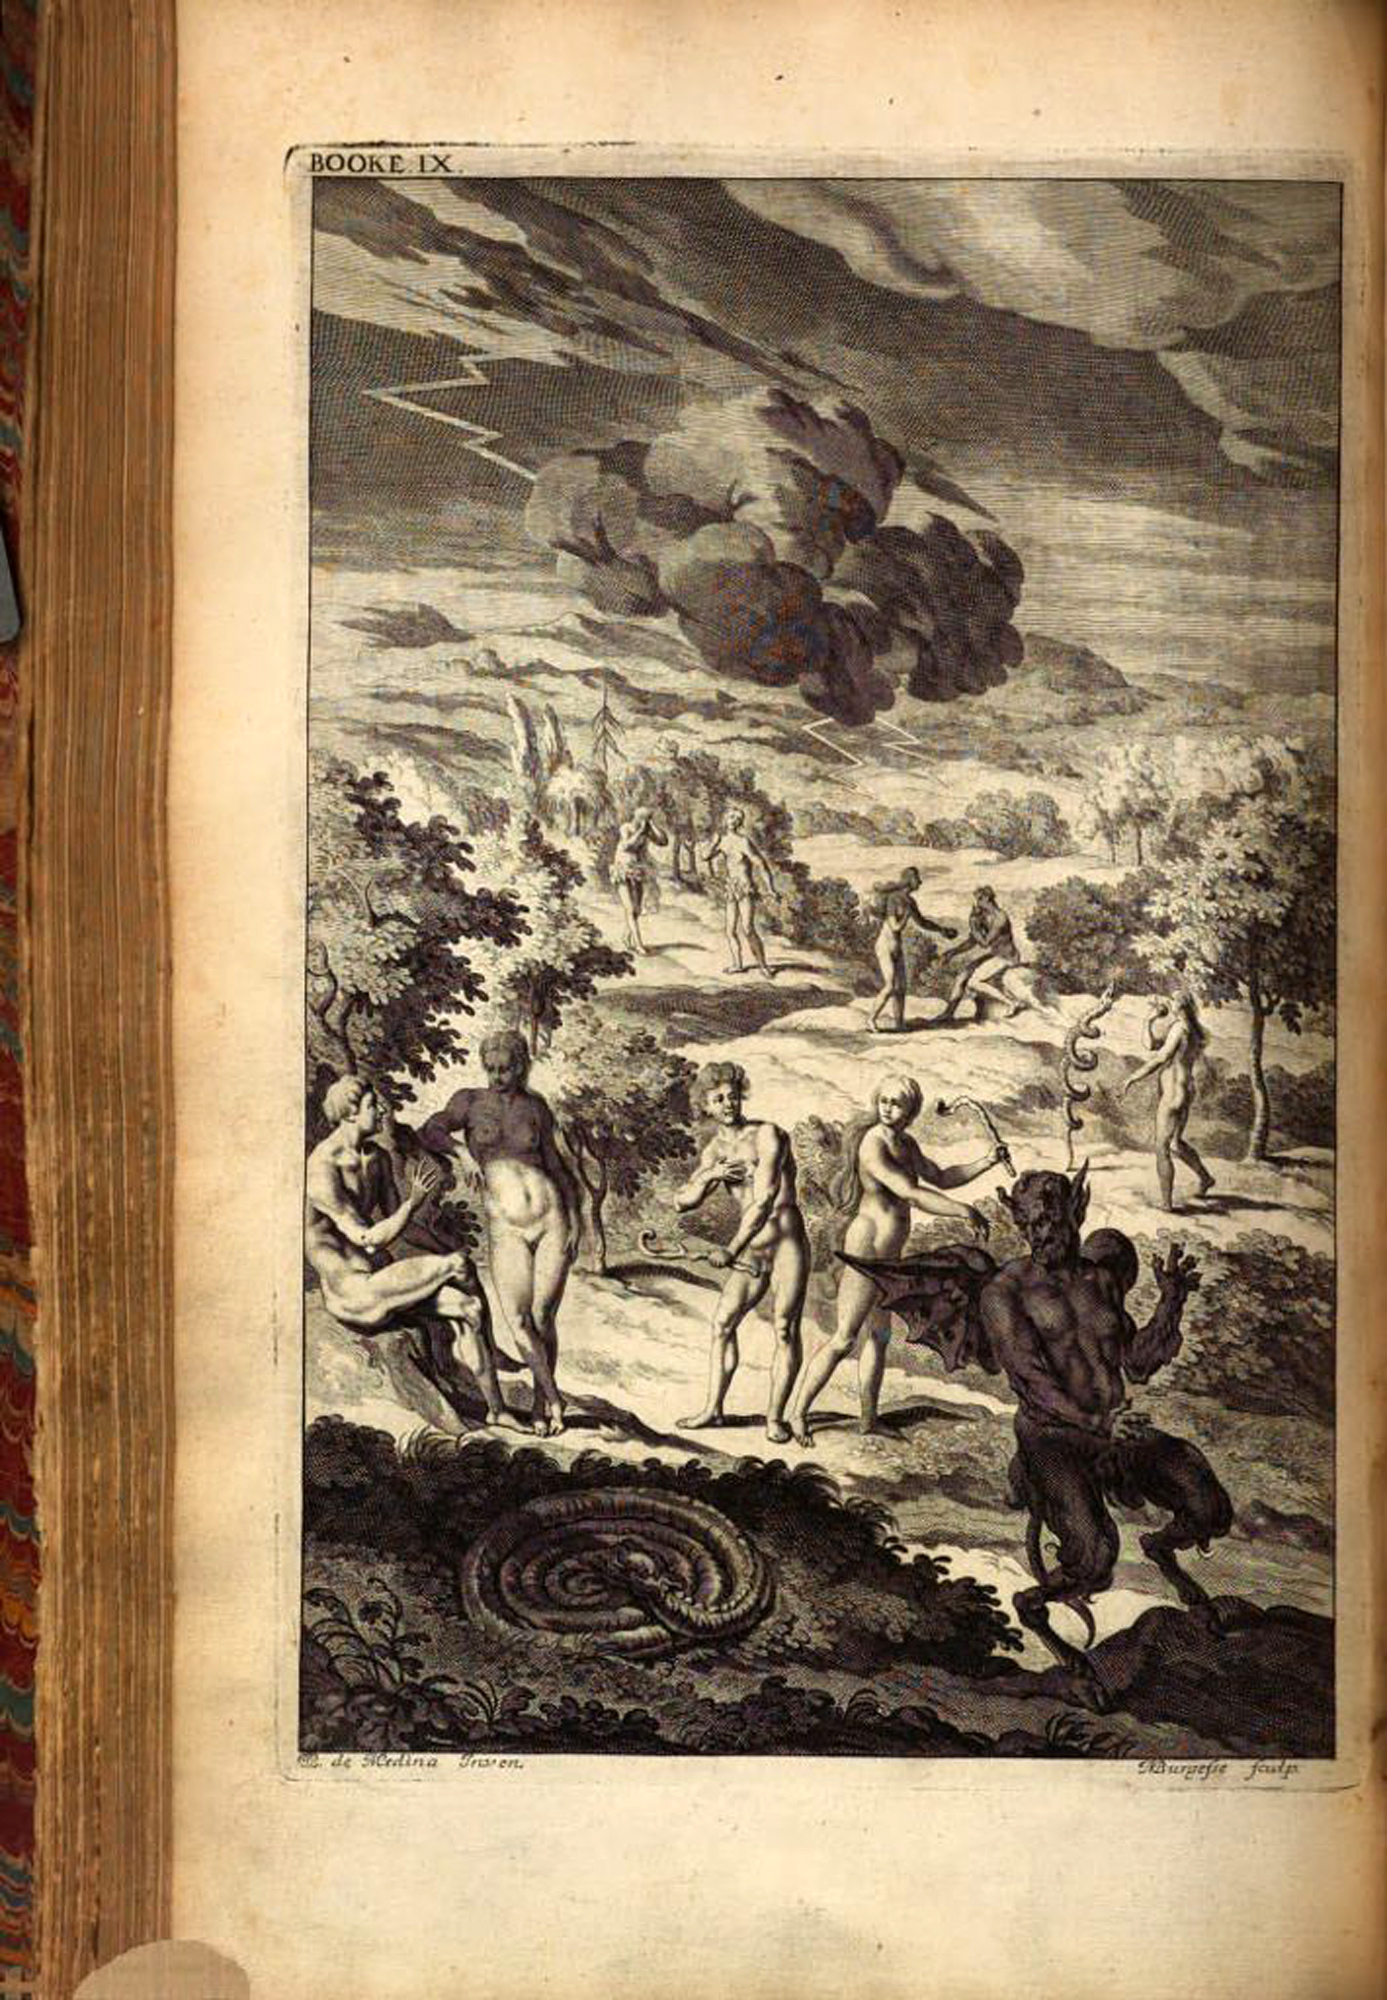 First illustrated edition of Paradise Lost, 1688